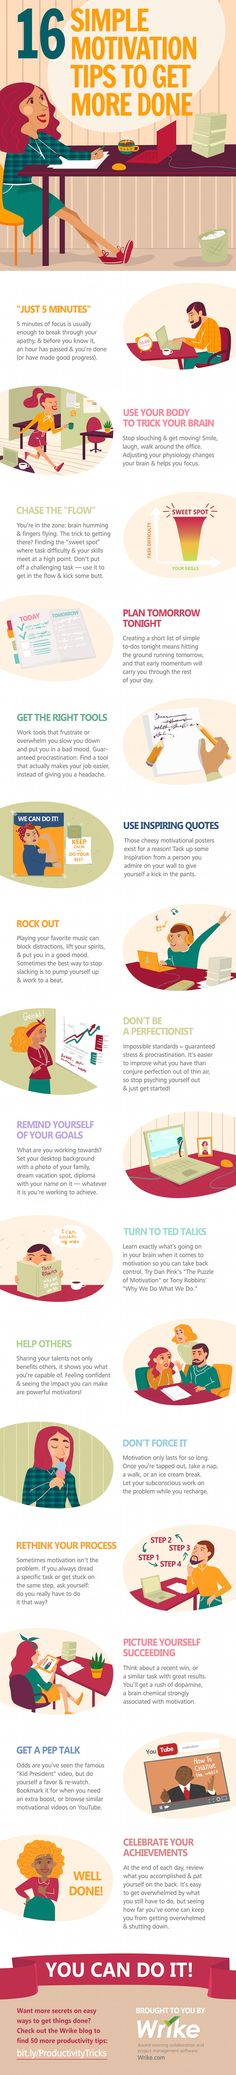 16 Easy to try. Easy to incorporate and very effective Motivation Tips To Get More Done - #Infographic. Productivity tips